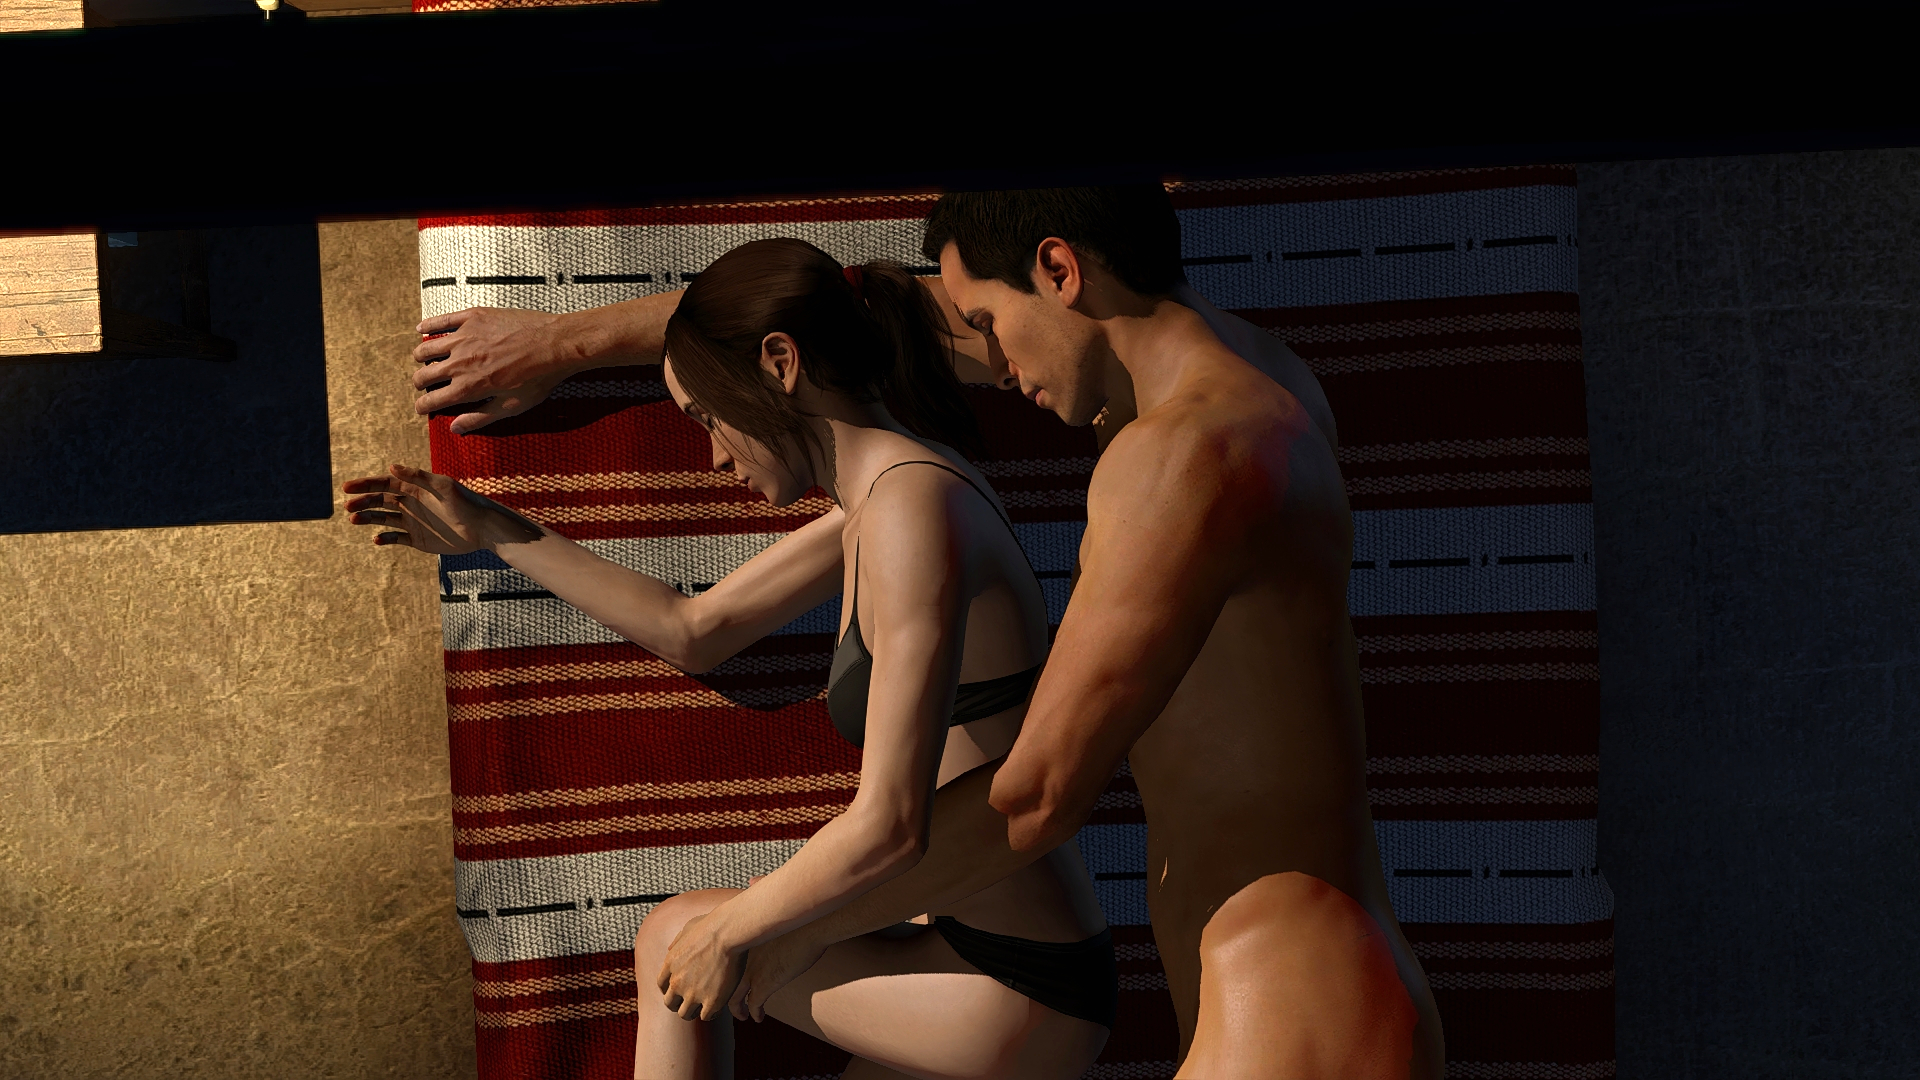 The worst sex scenes in gaming